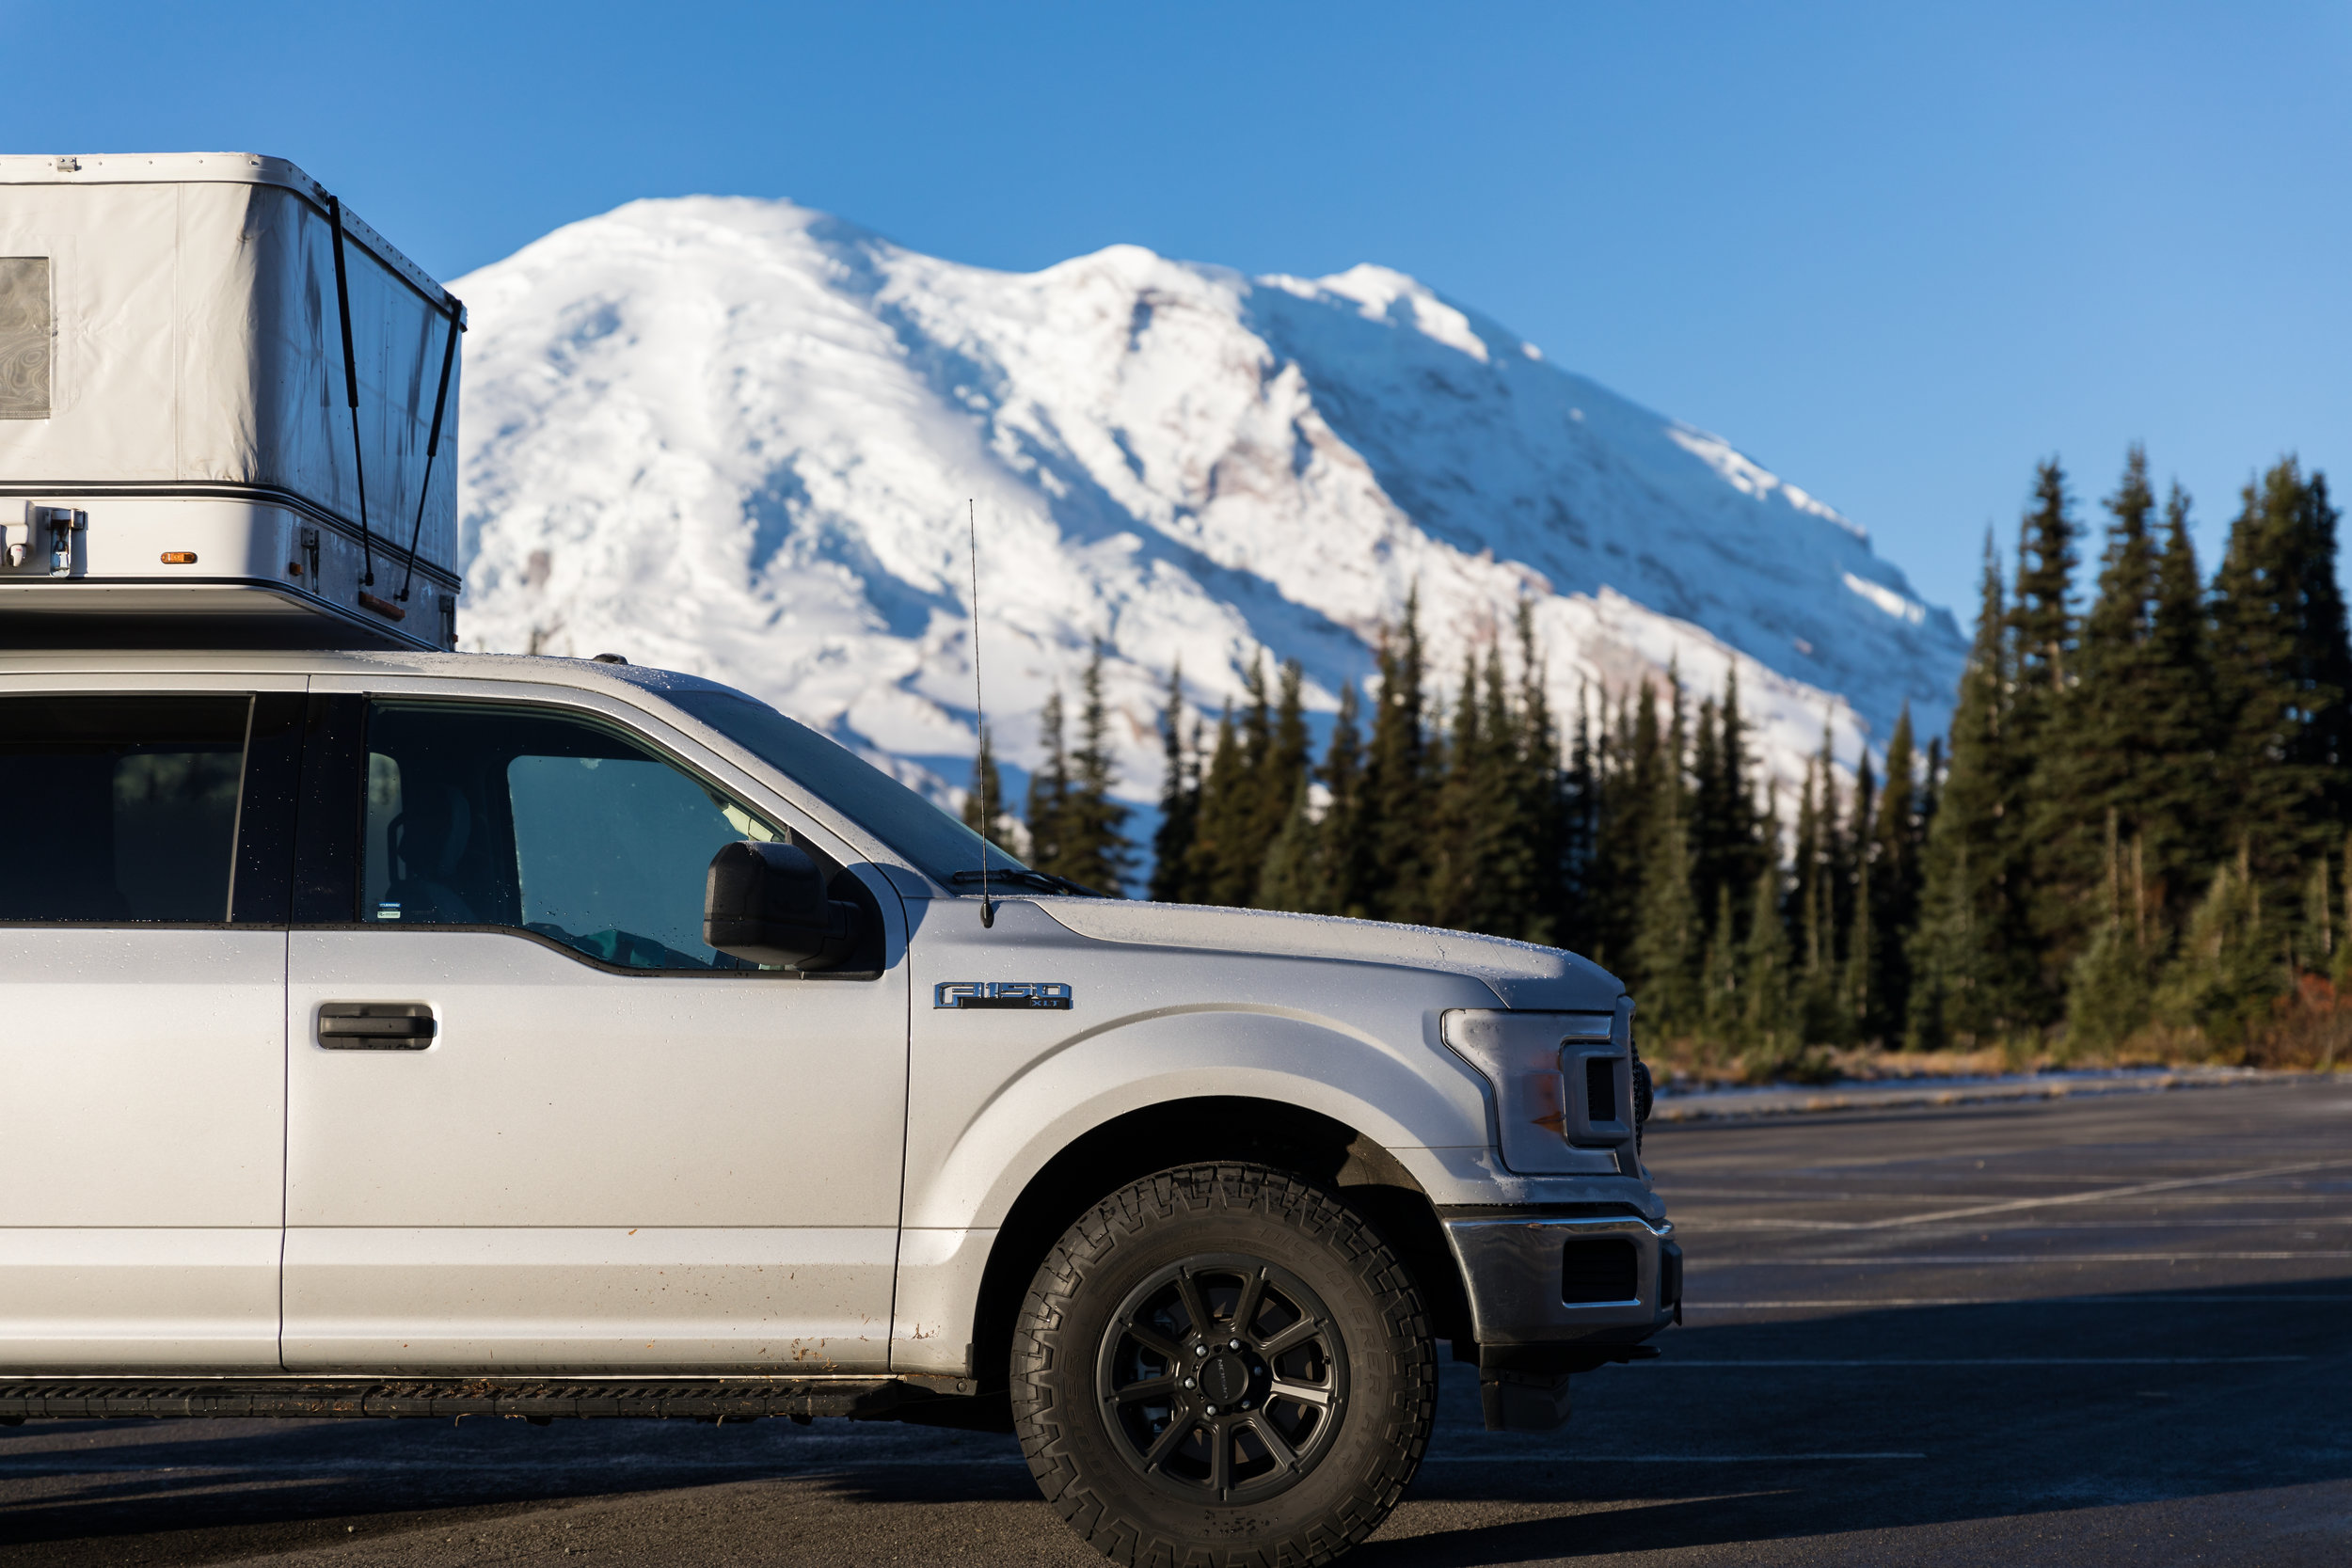 4x4 Truck Camper and Rooftop Tent Rentals in Oregon | Four Wheel